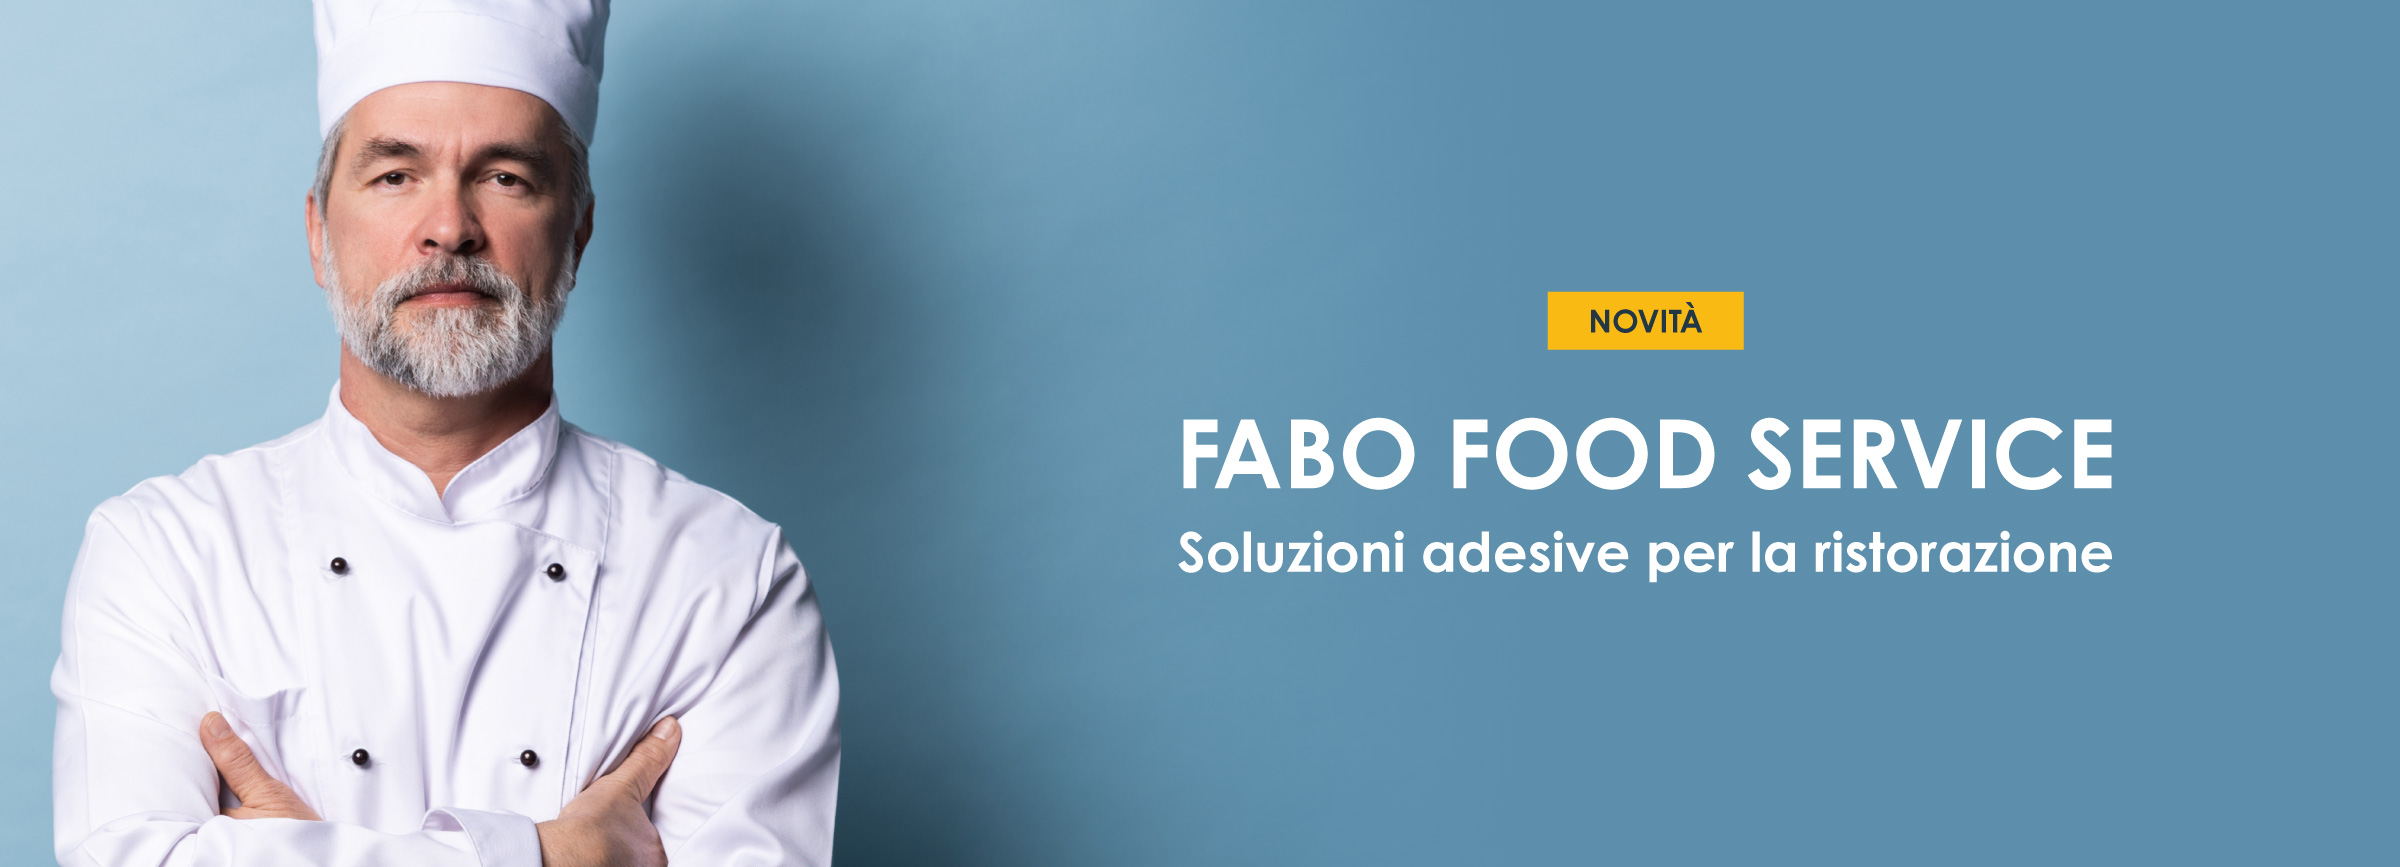 Fabo Food Service